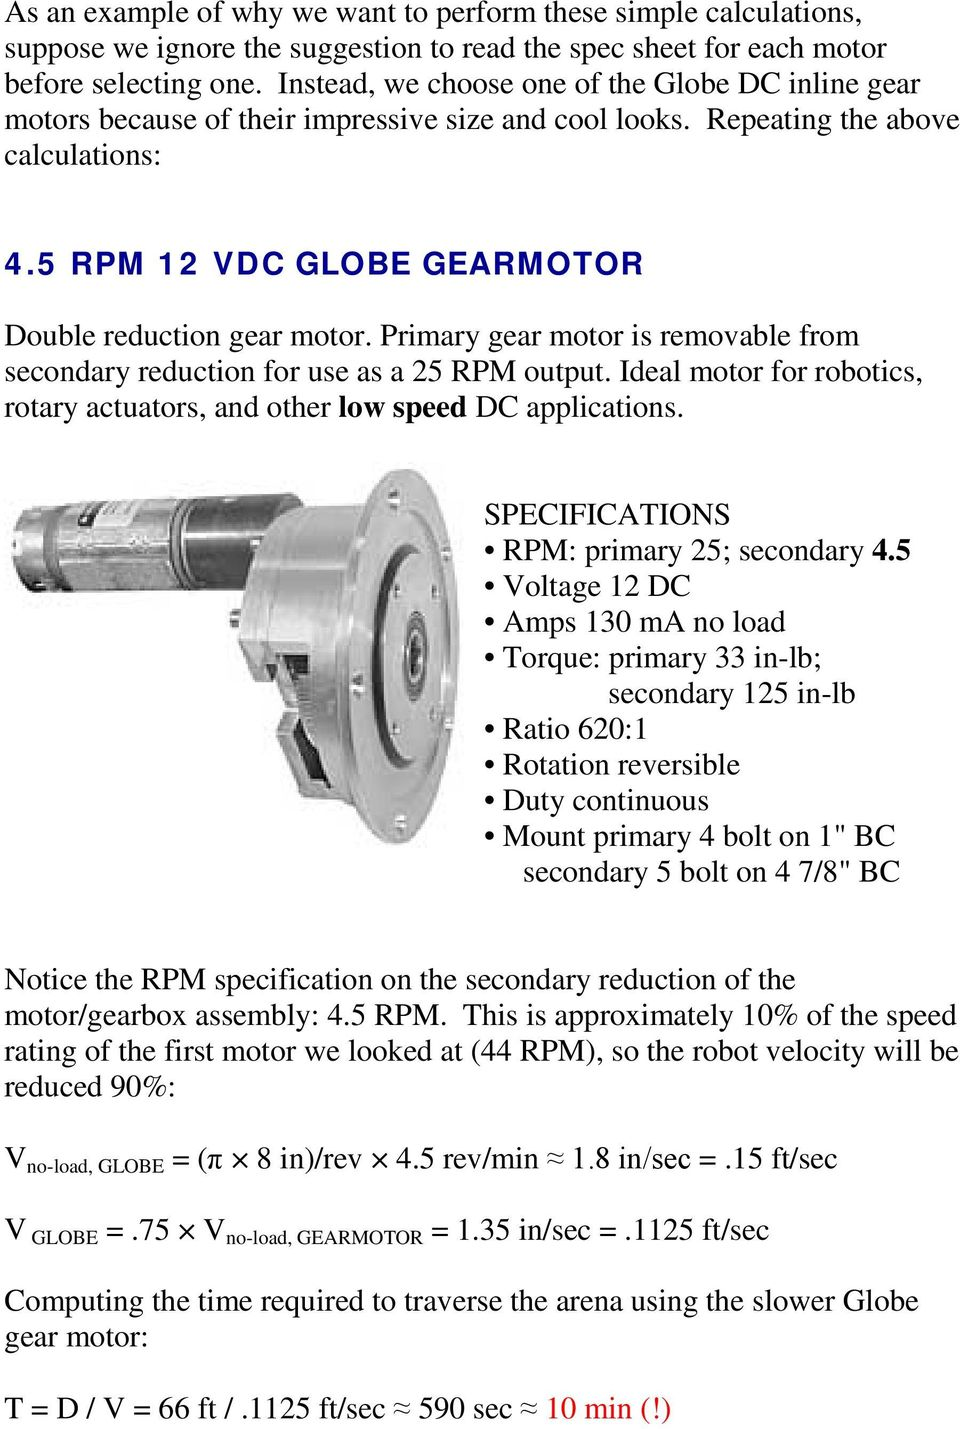 Primary gear motor is removable from secondary reduction for use as a 25 RPM output. Ideal motor for robotics, rotary actuators, and other low speed DC applications.